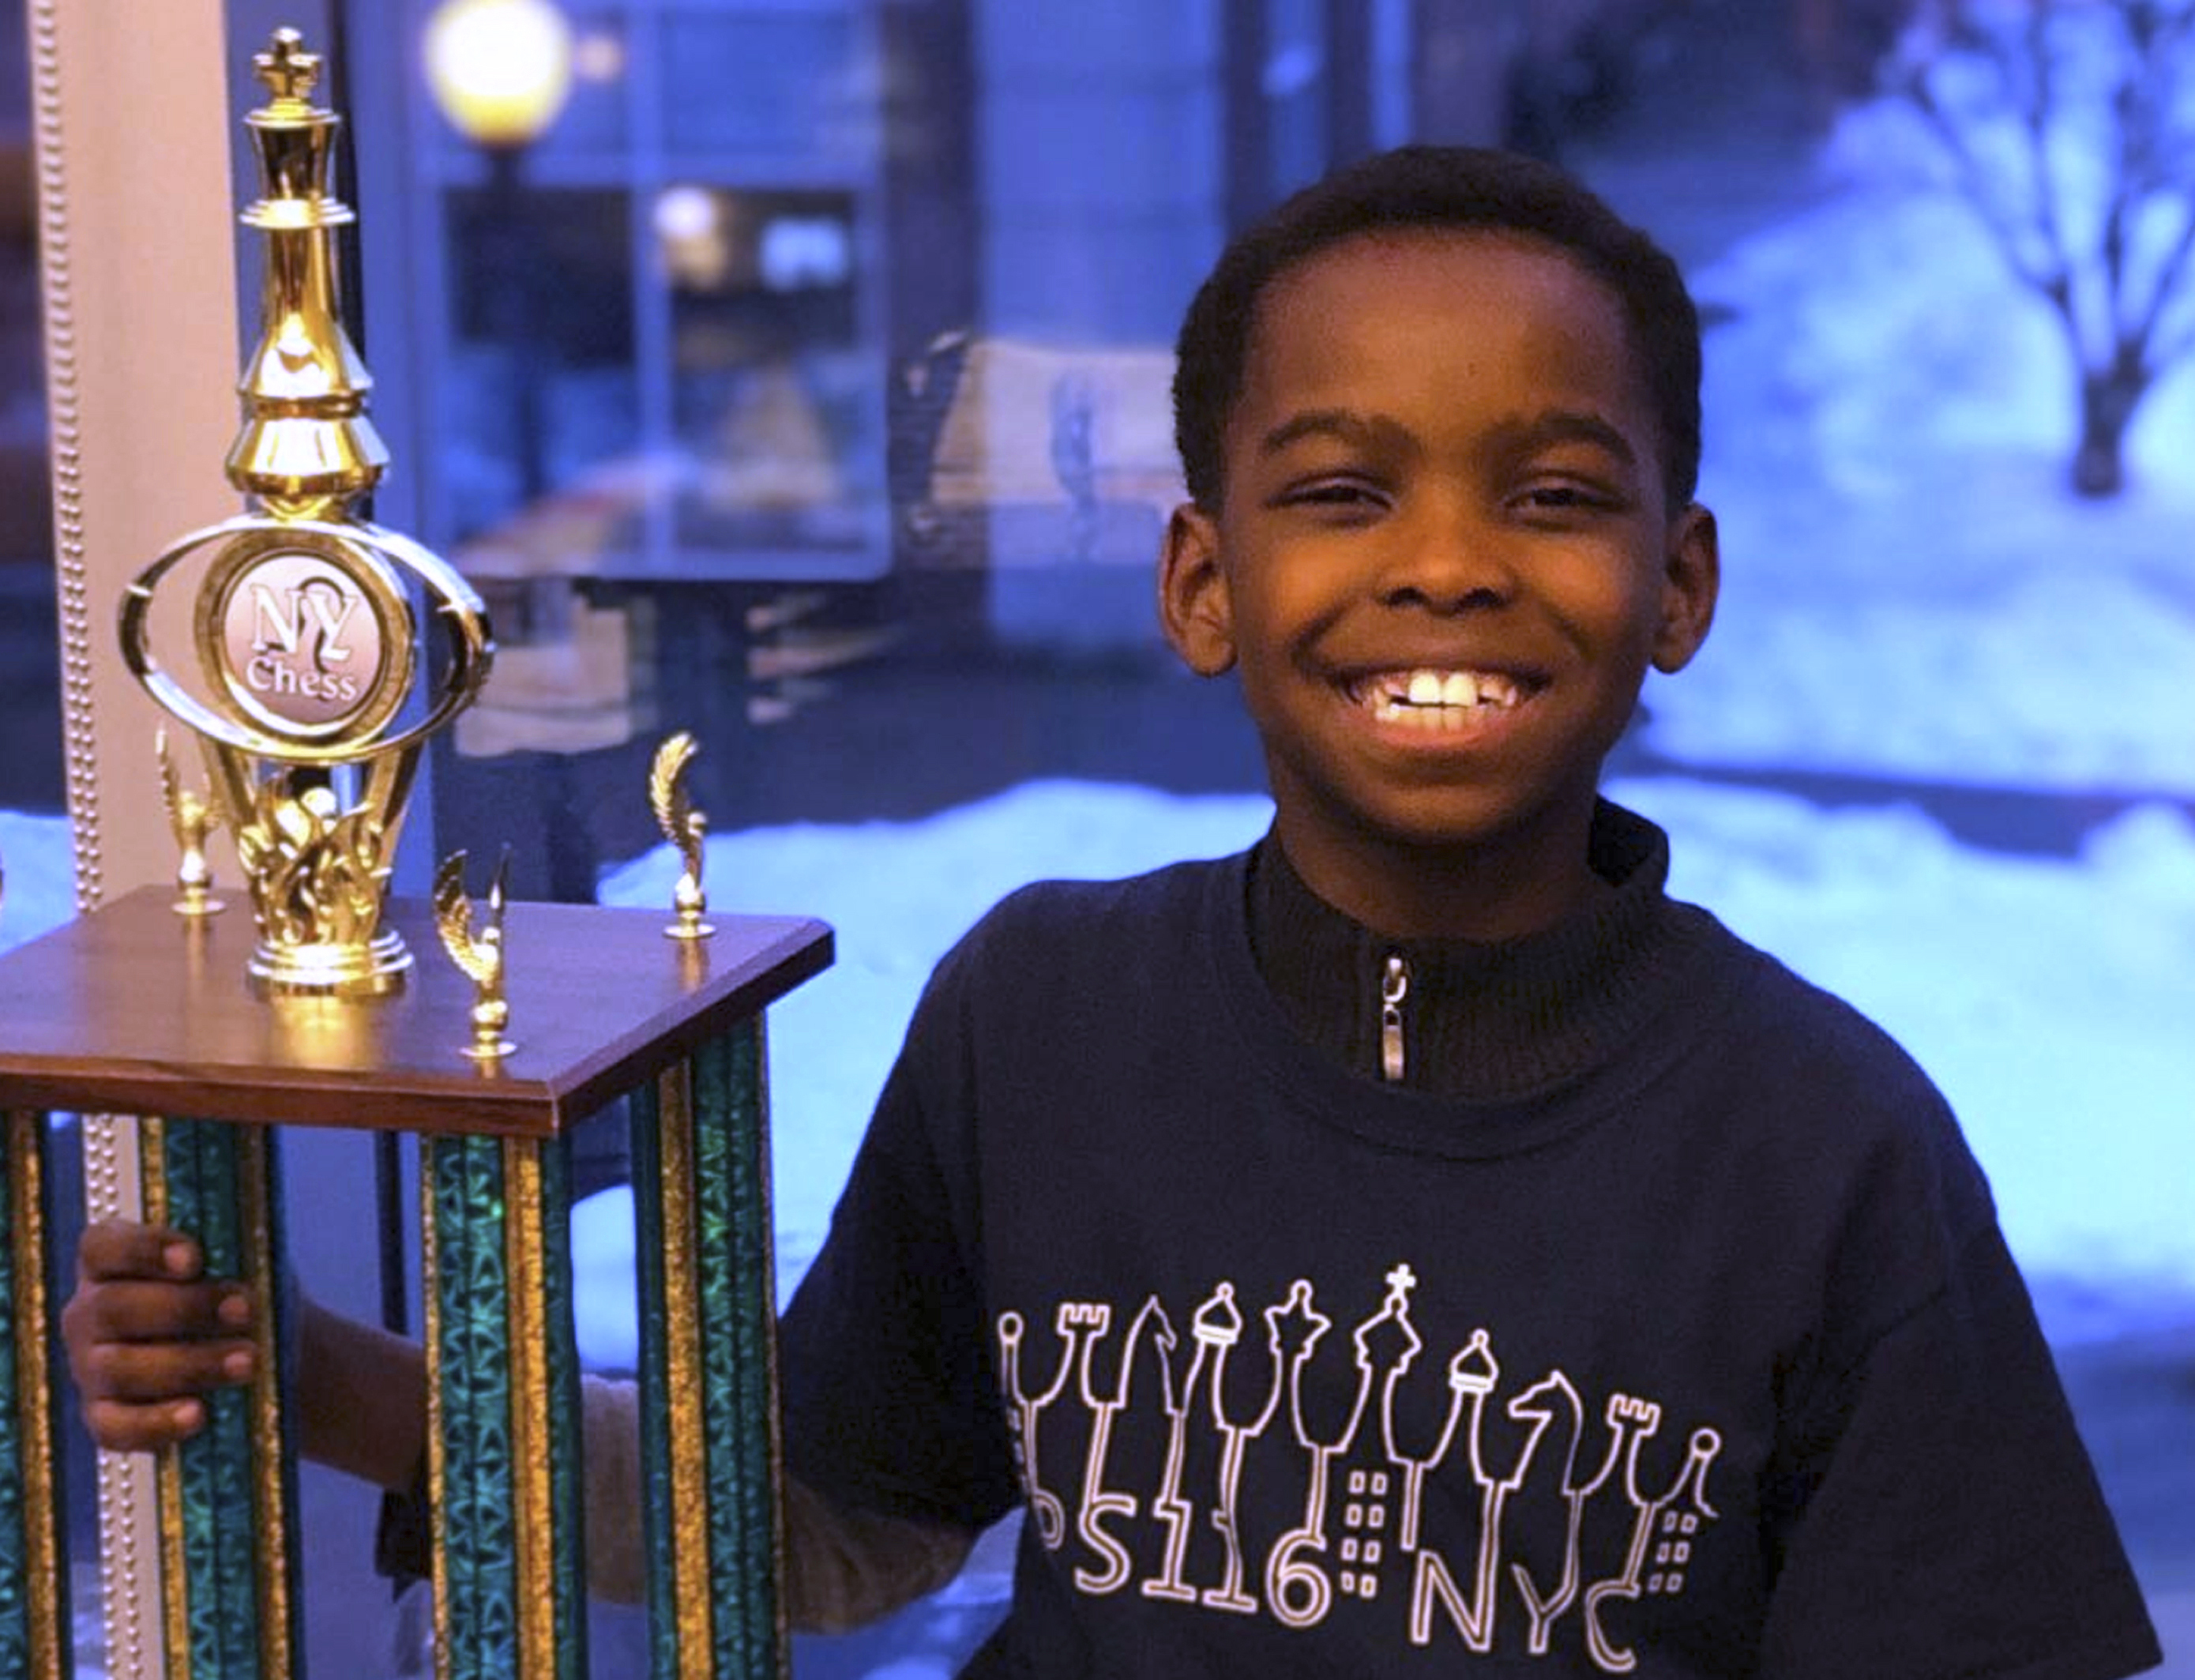 The heart-warming tale of the 8-year-old chess champion is quintessentially American